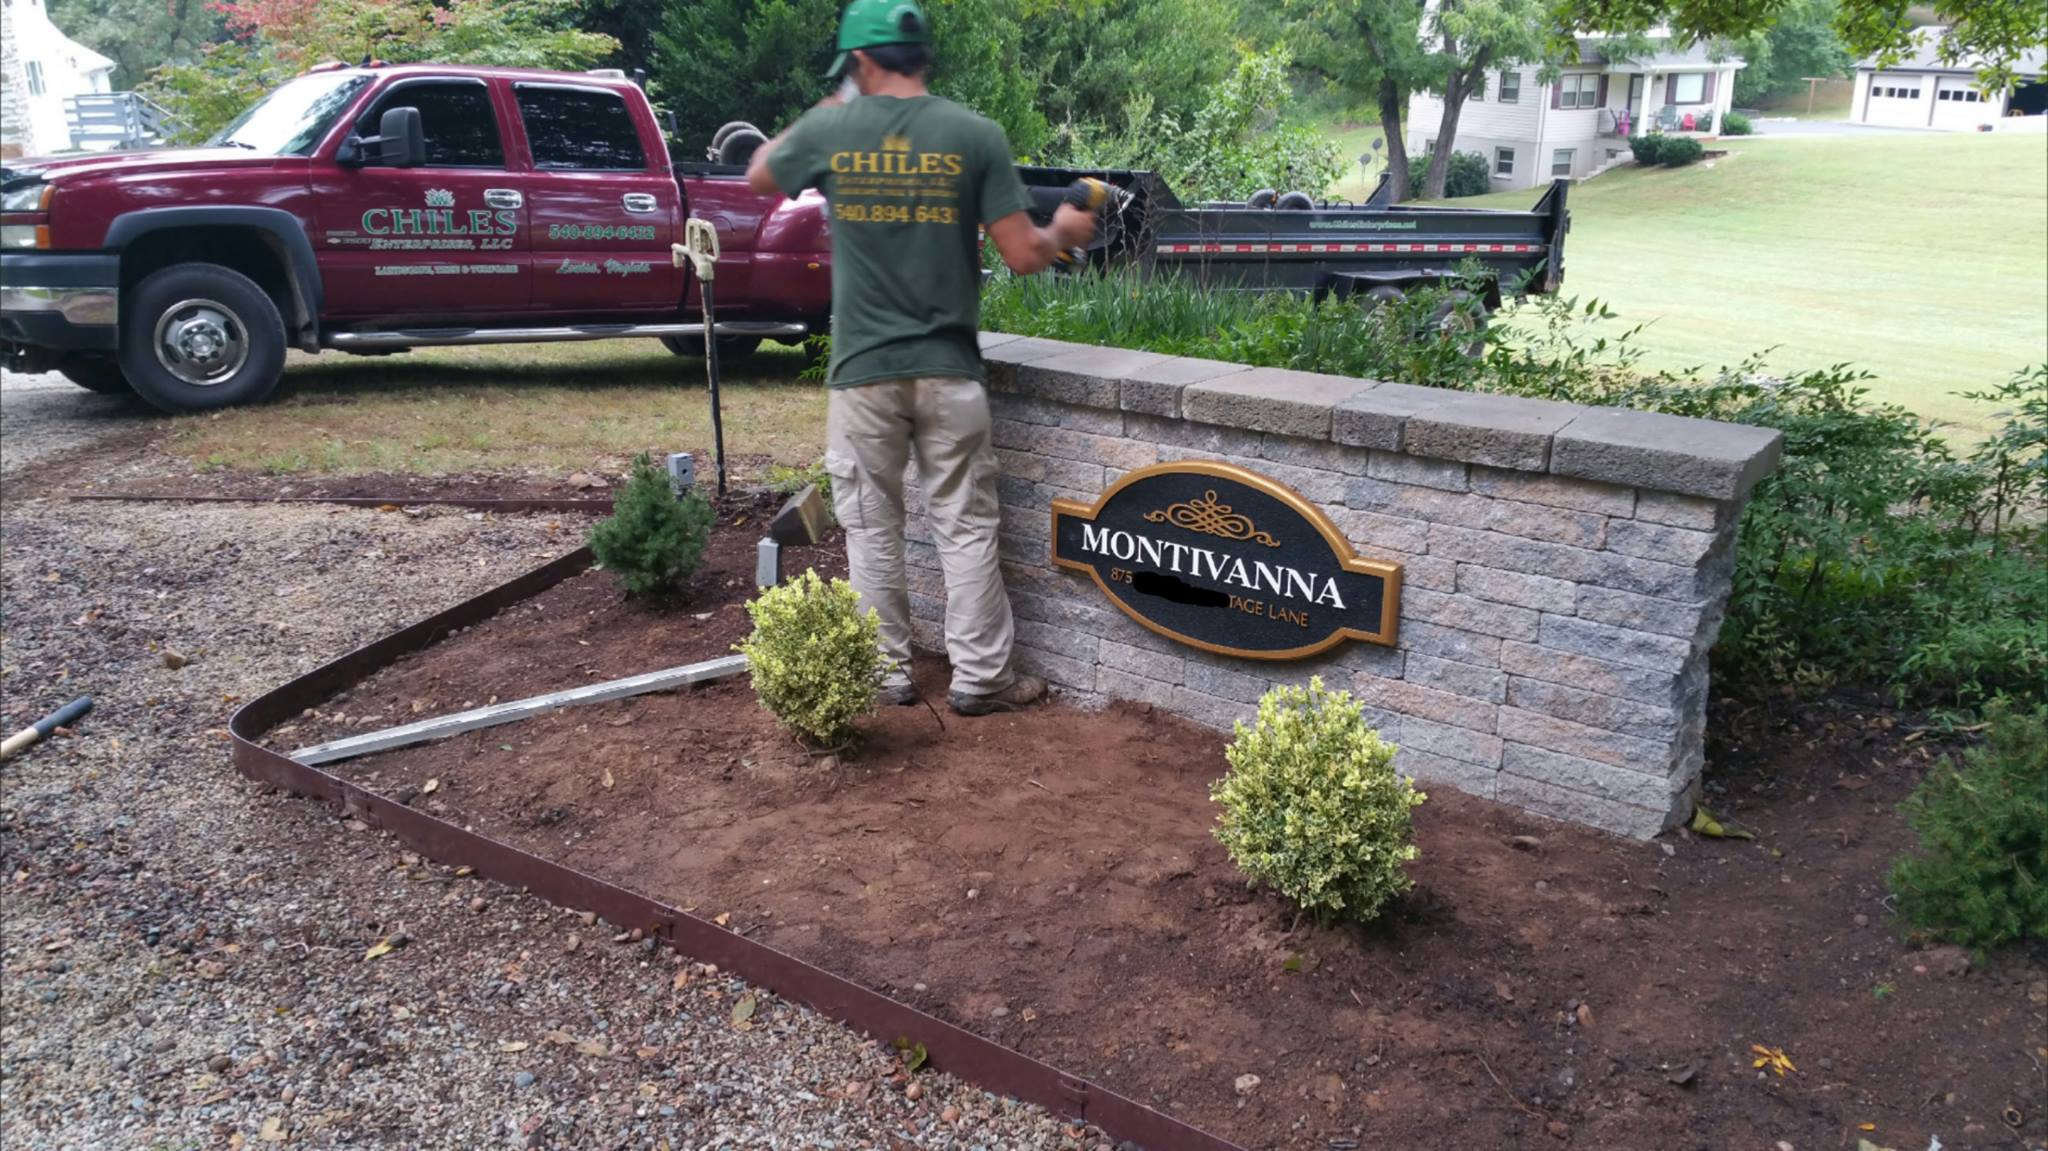 landscaper installing shrubs in front of a Montivanna sign